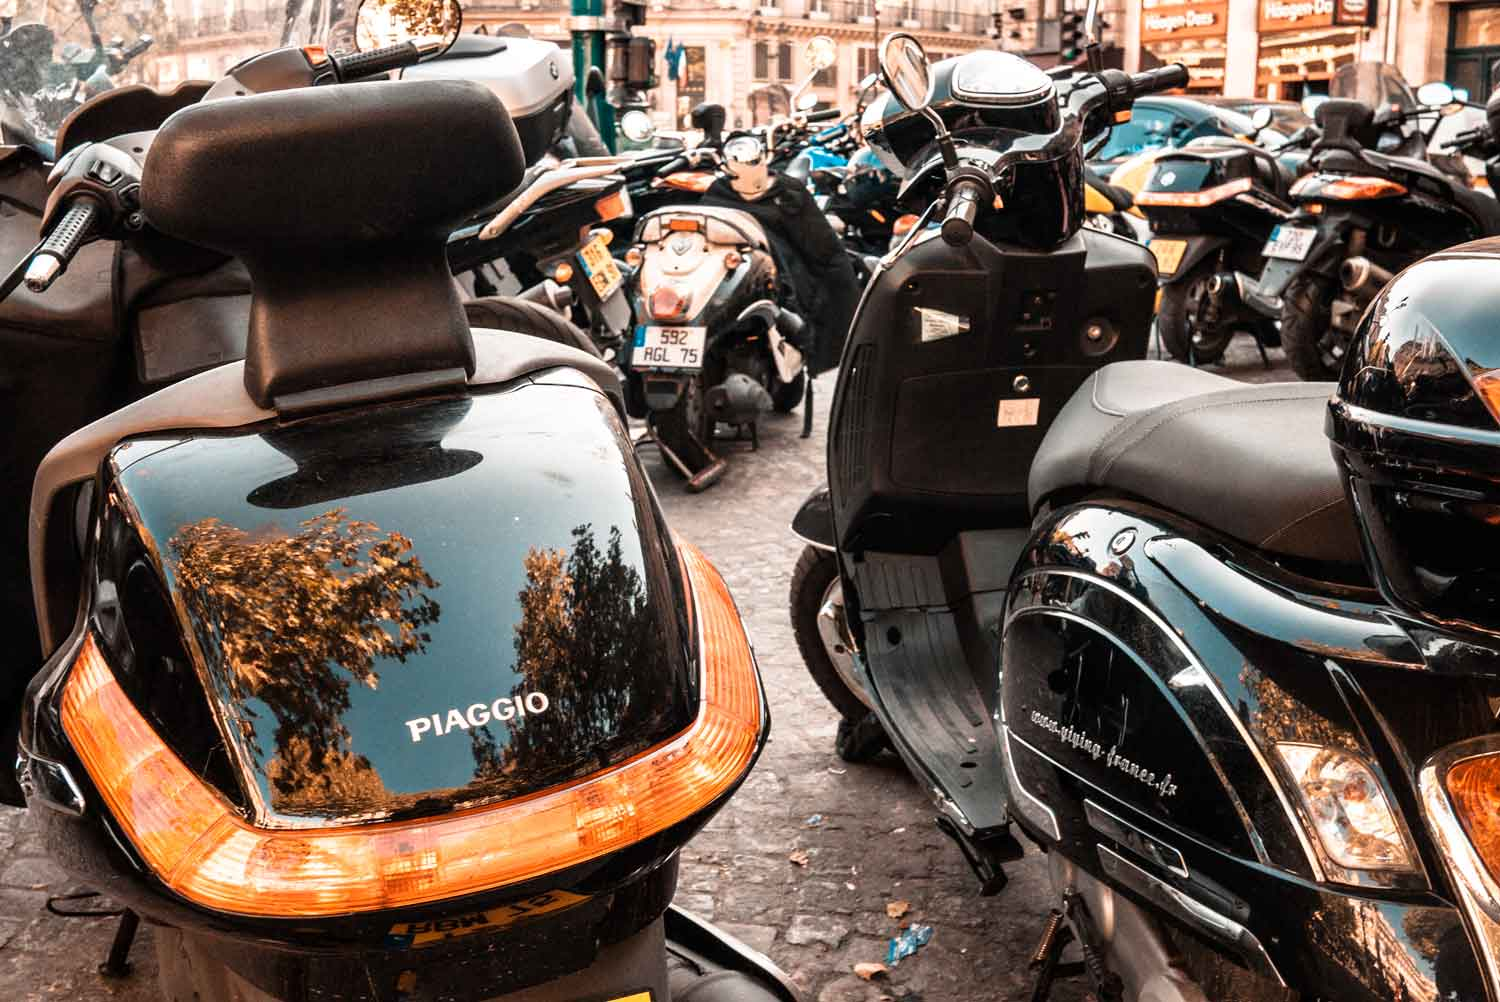 Motorcycles gather in central Paris.